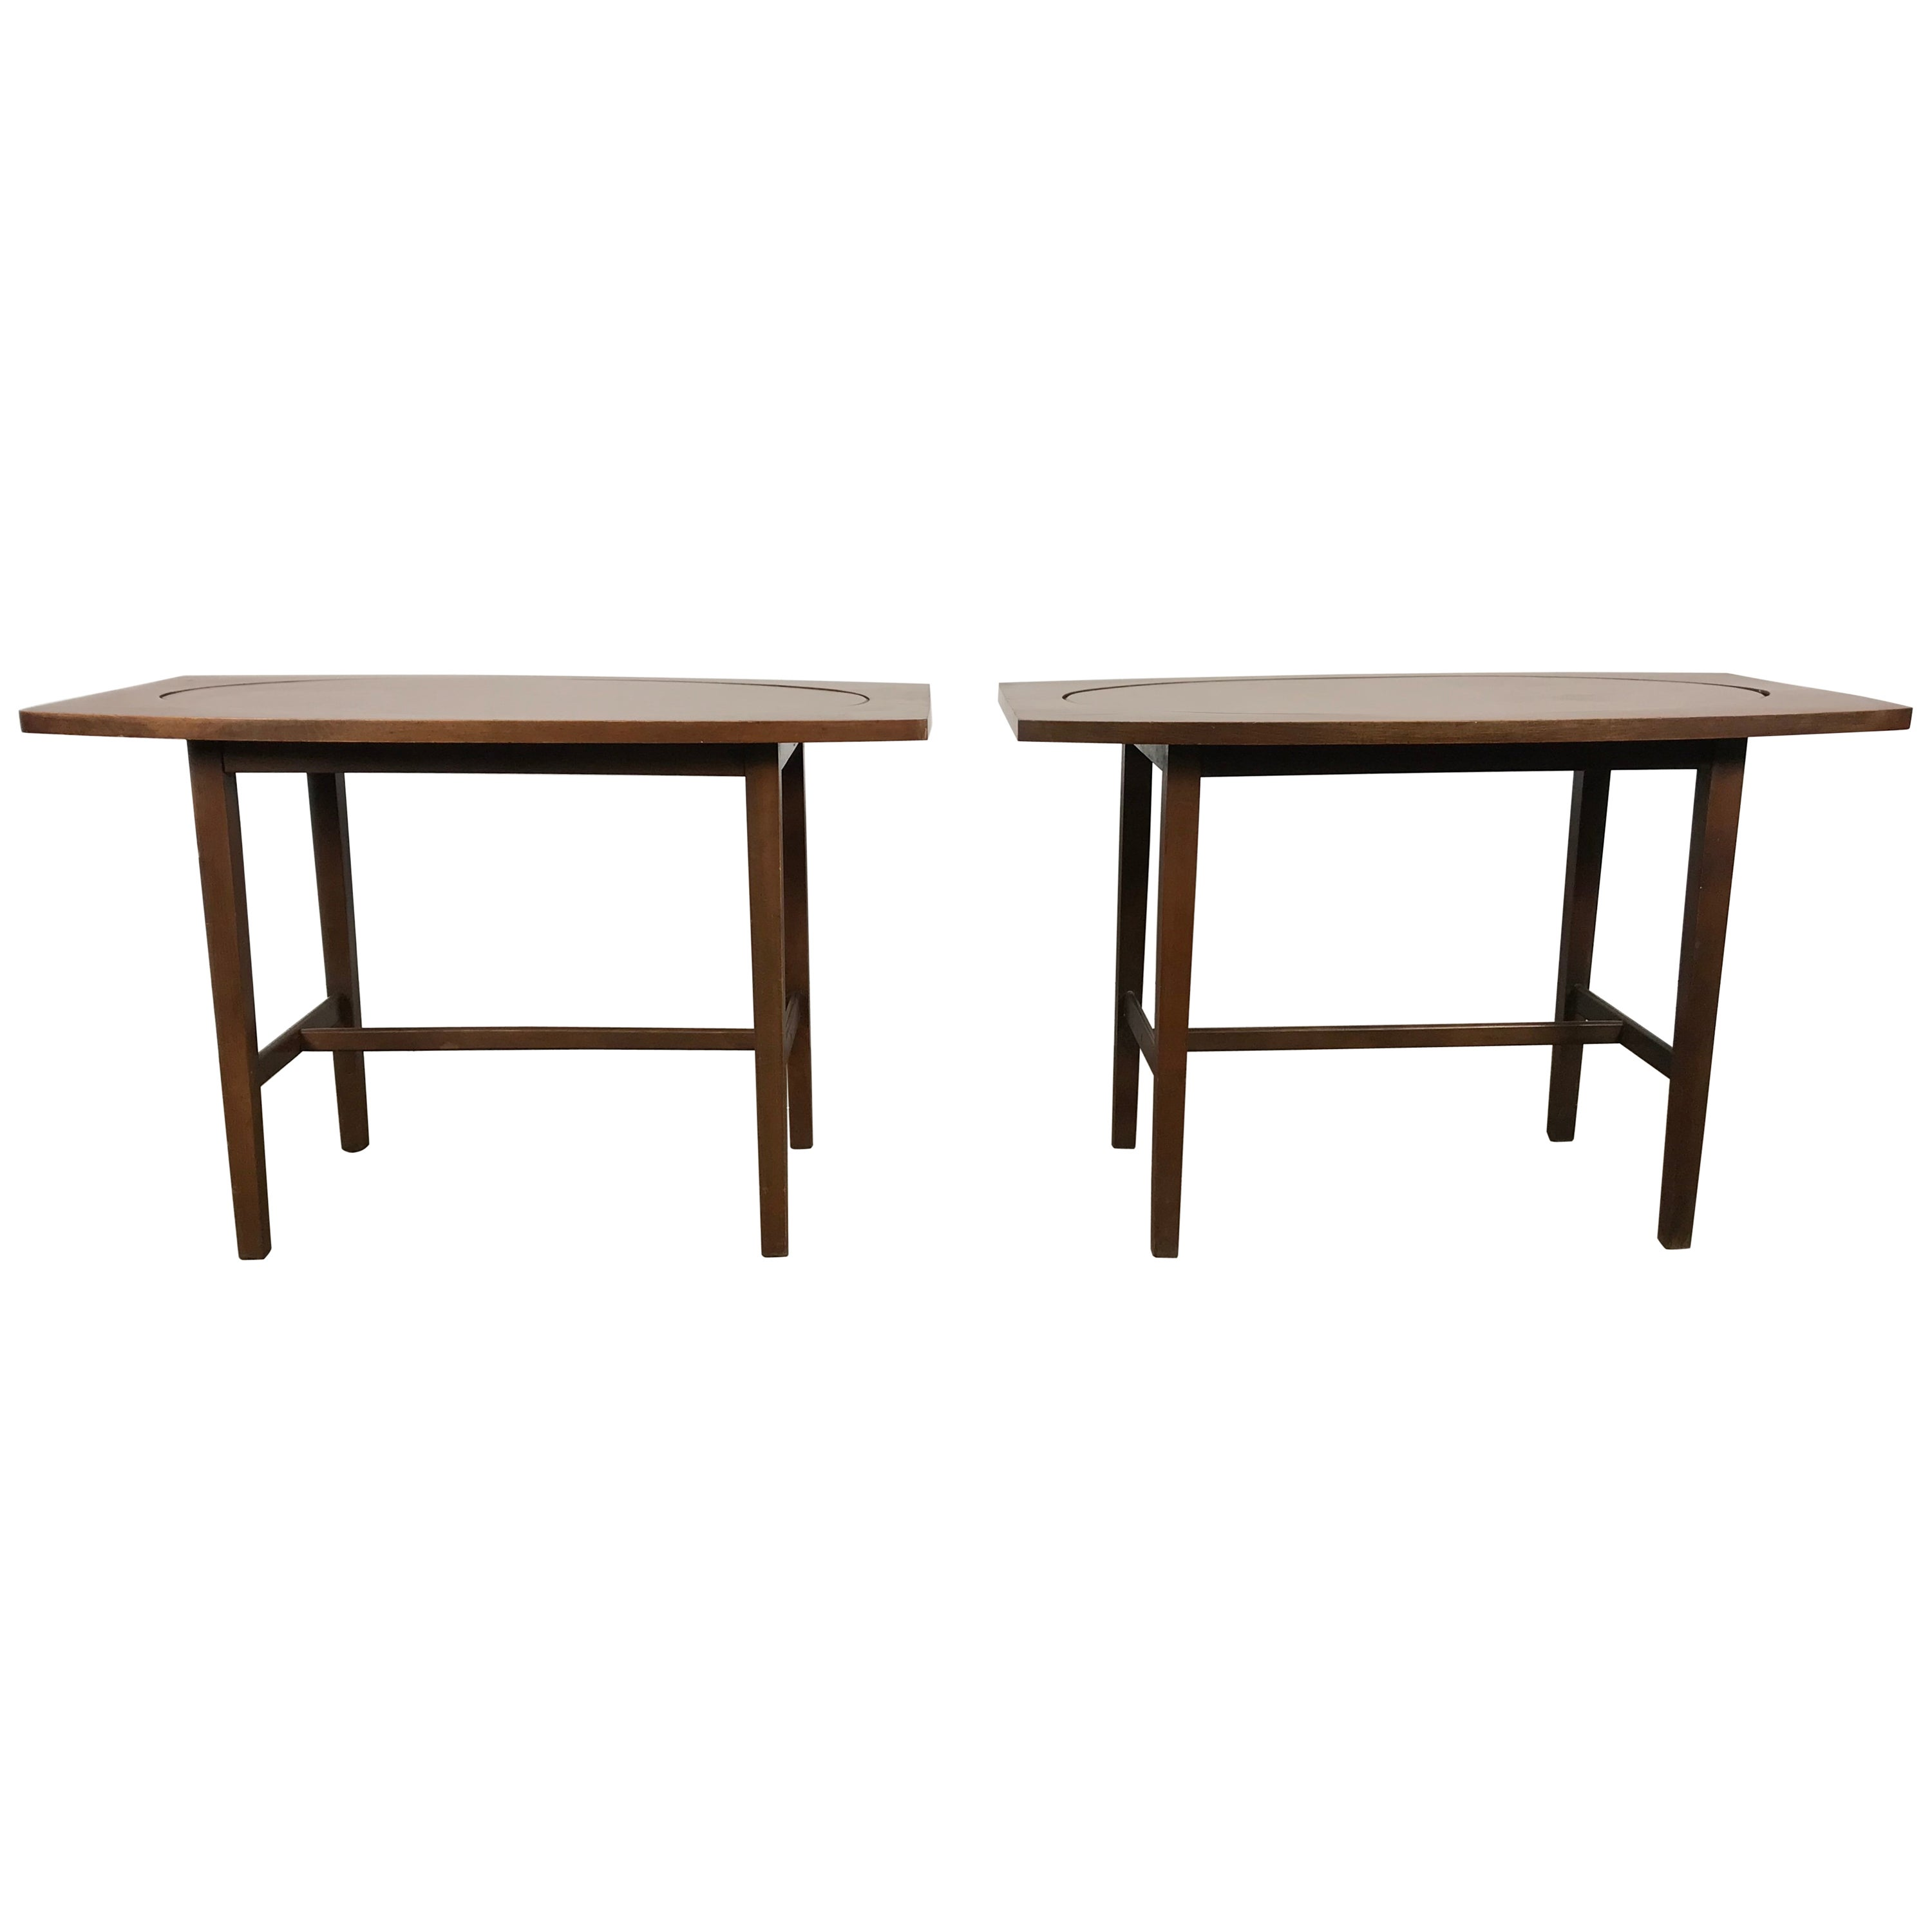 Paul McCobb End Tables Perimeter Group for Winchendon Furniture Co. 1950